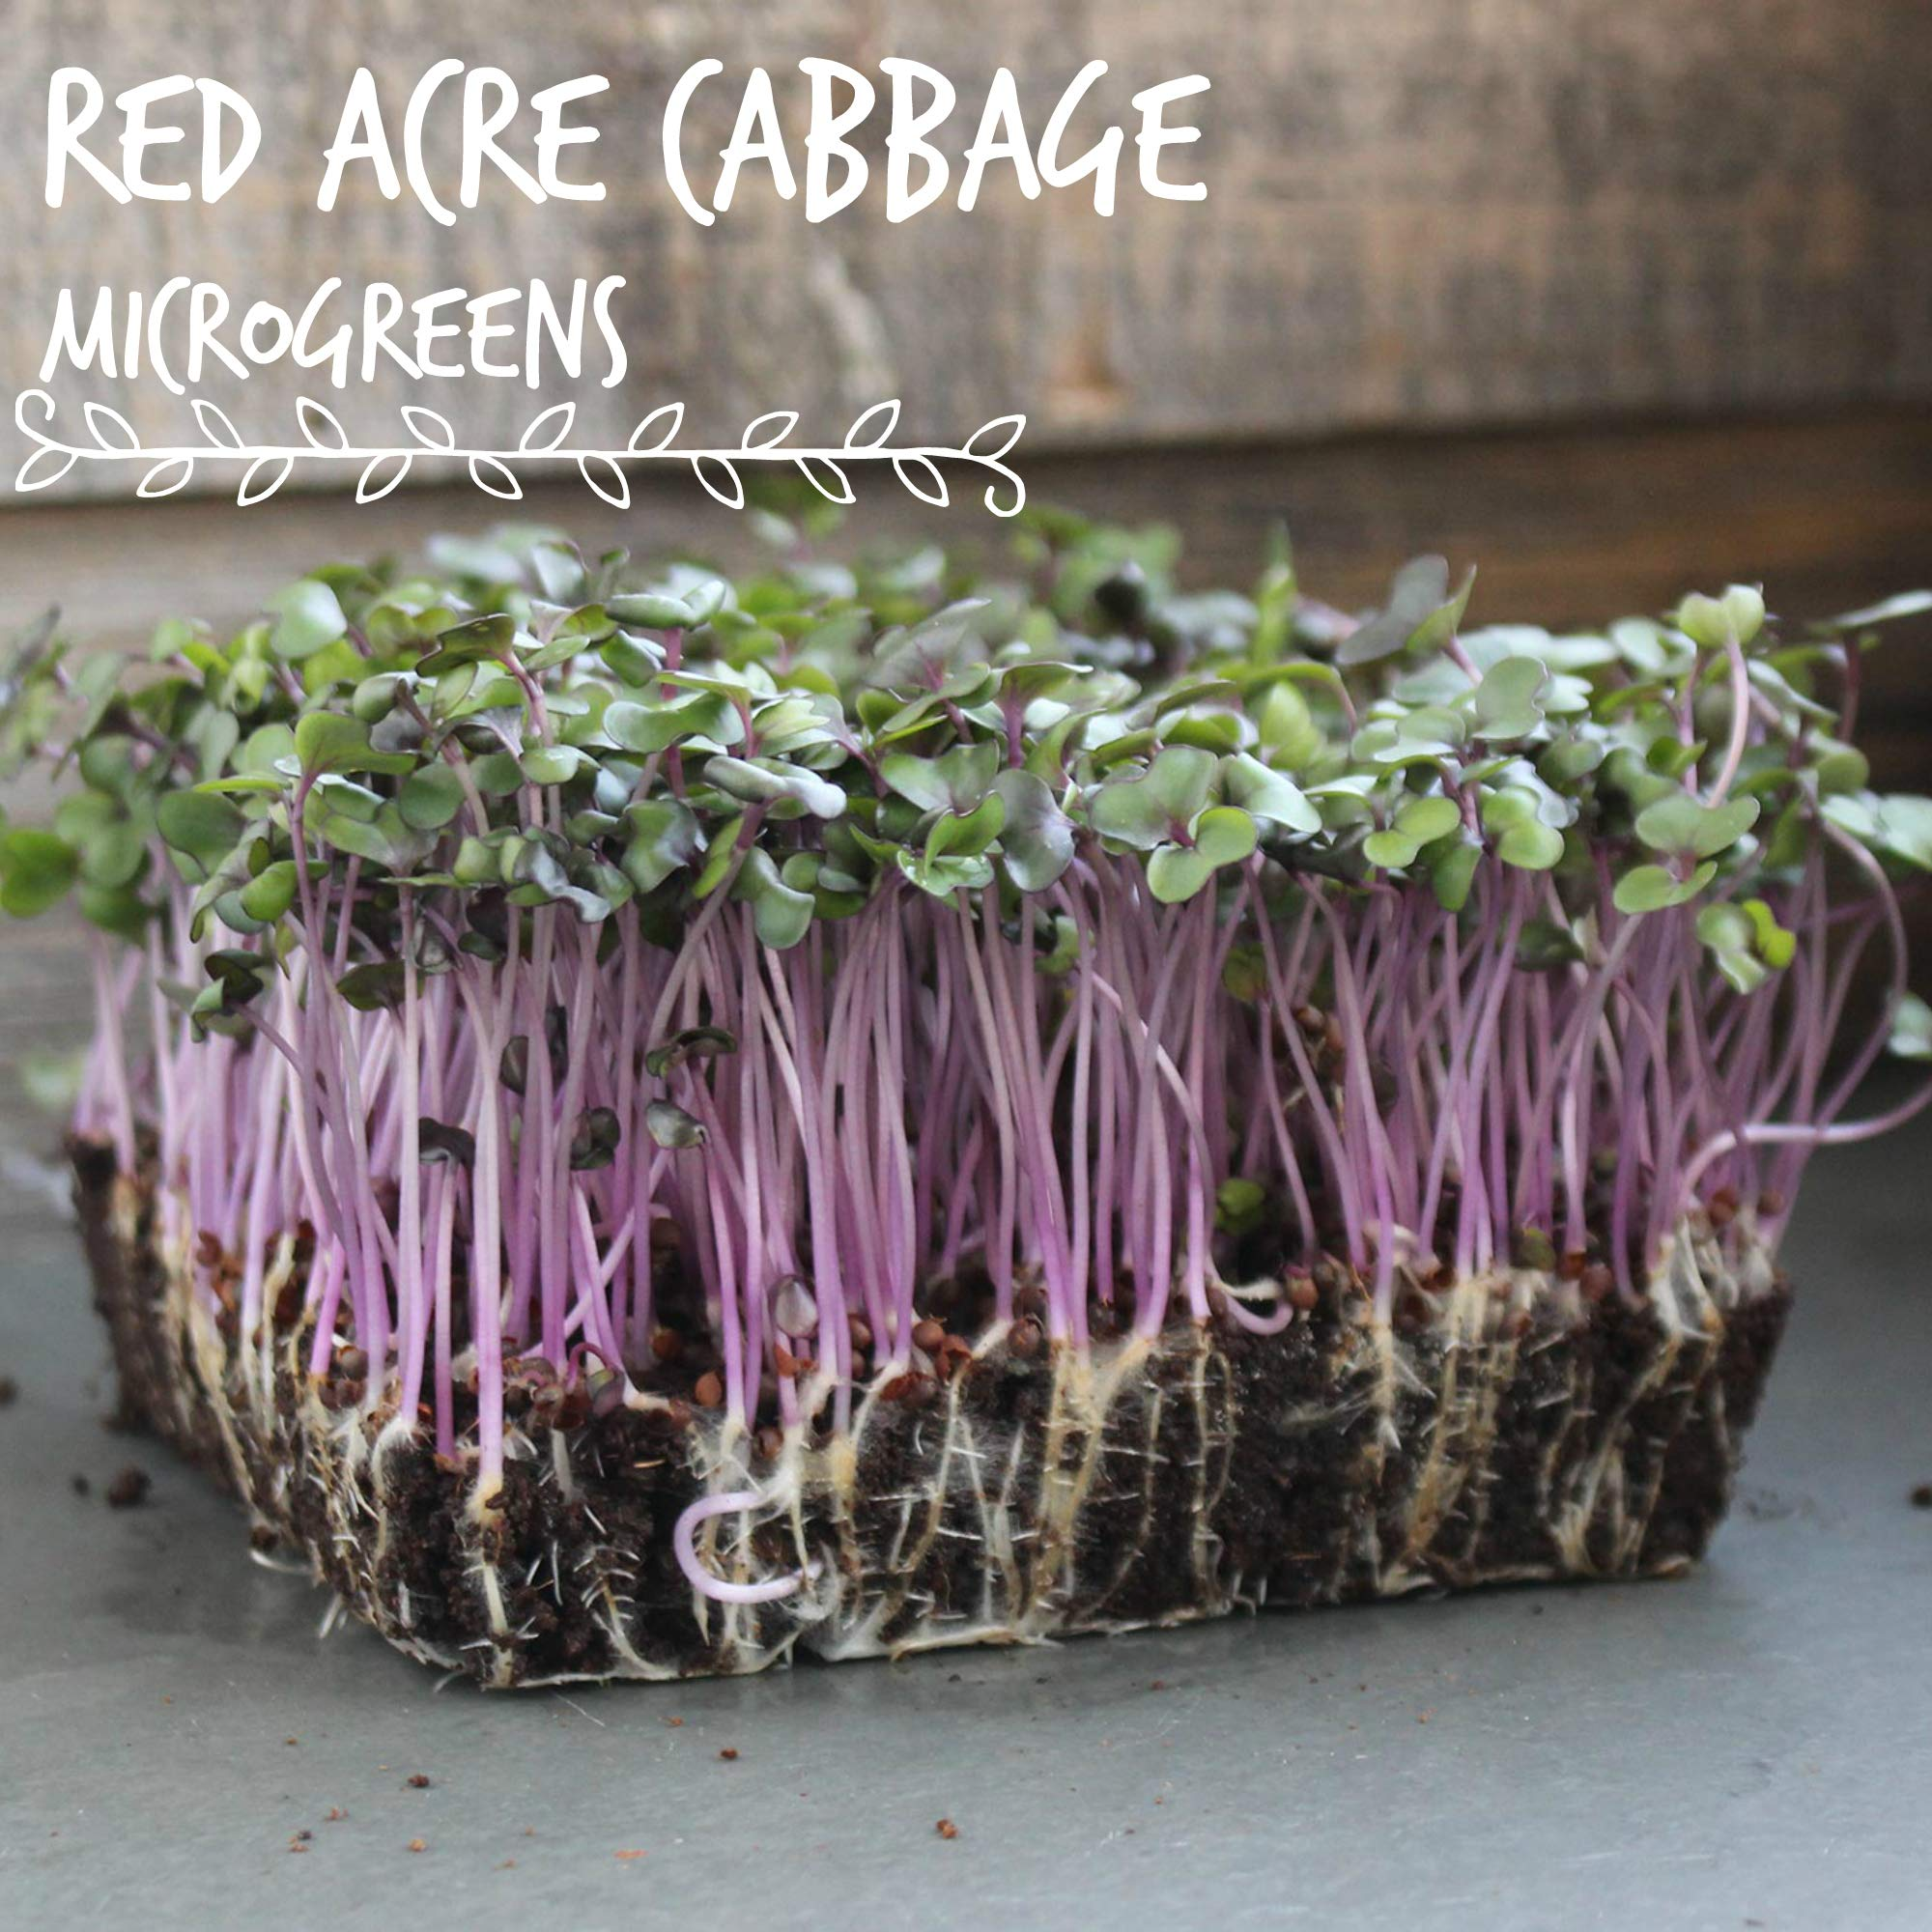 Red Acre Cabbage Seeds: 1 Lb - Non-GMO, Chemical Free Sprouting Seeds for Vegetable Garden & Growing Micro Greens by Mountain Valley Seed Company (Image #3)